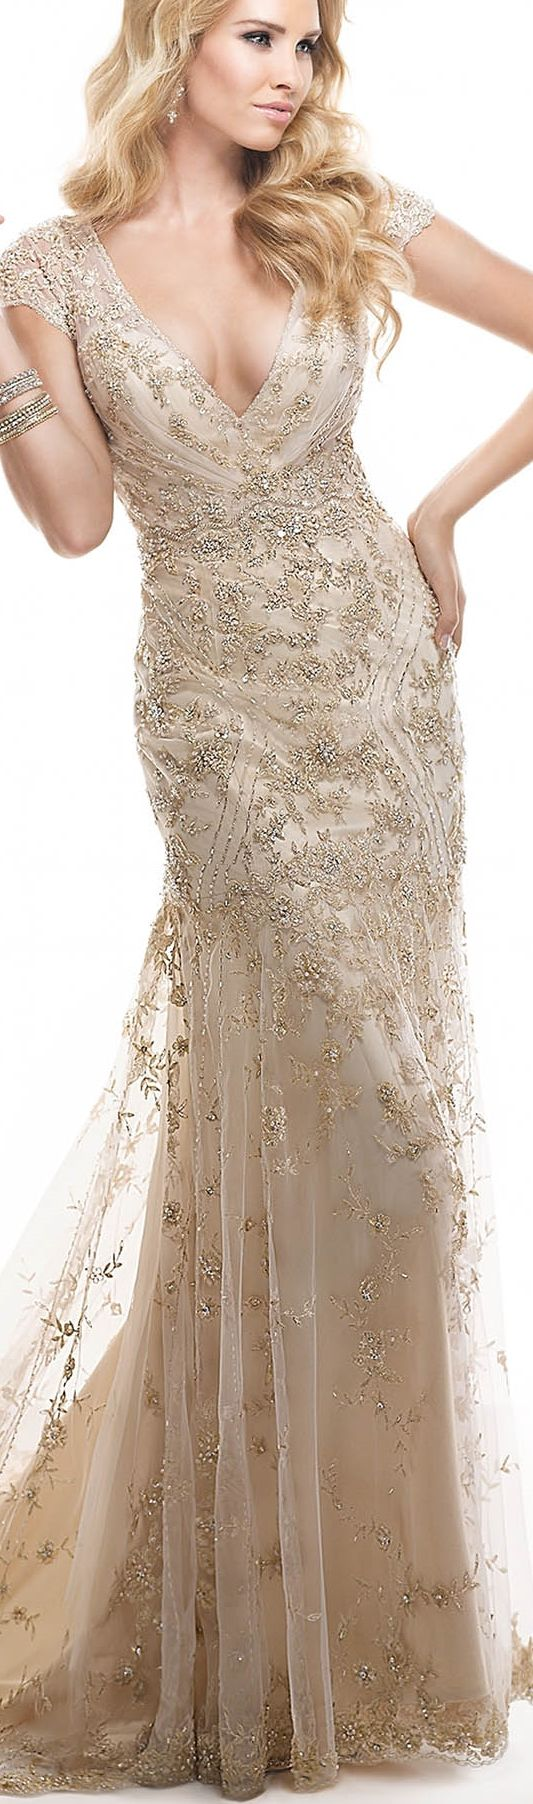 { Maggie Sottero | Tuscany | All things feminine are found in this dazzling sheath gown - a dramatic back, delicate cap-sleeves and sparkling lace. Beaded metallic embroidery on tulle features twinkling Swarovski crystals, finished with zipper over inner elastic and crystal button closure. Ivory over Alabaster, Gold over Champagne }